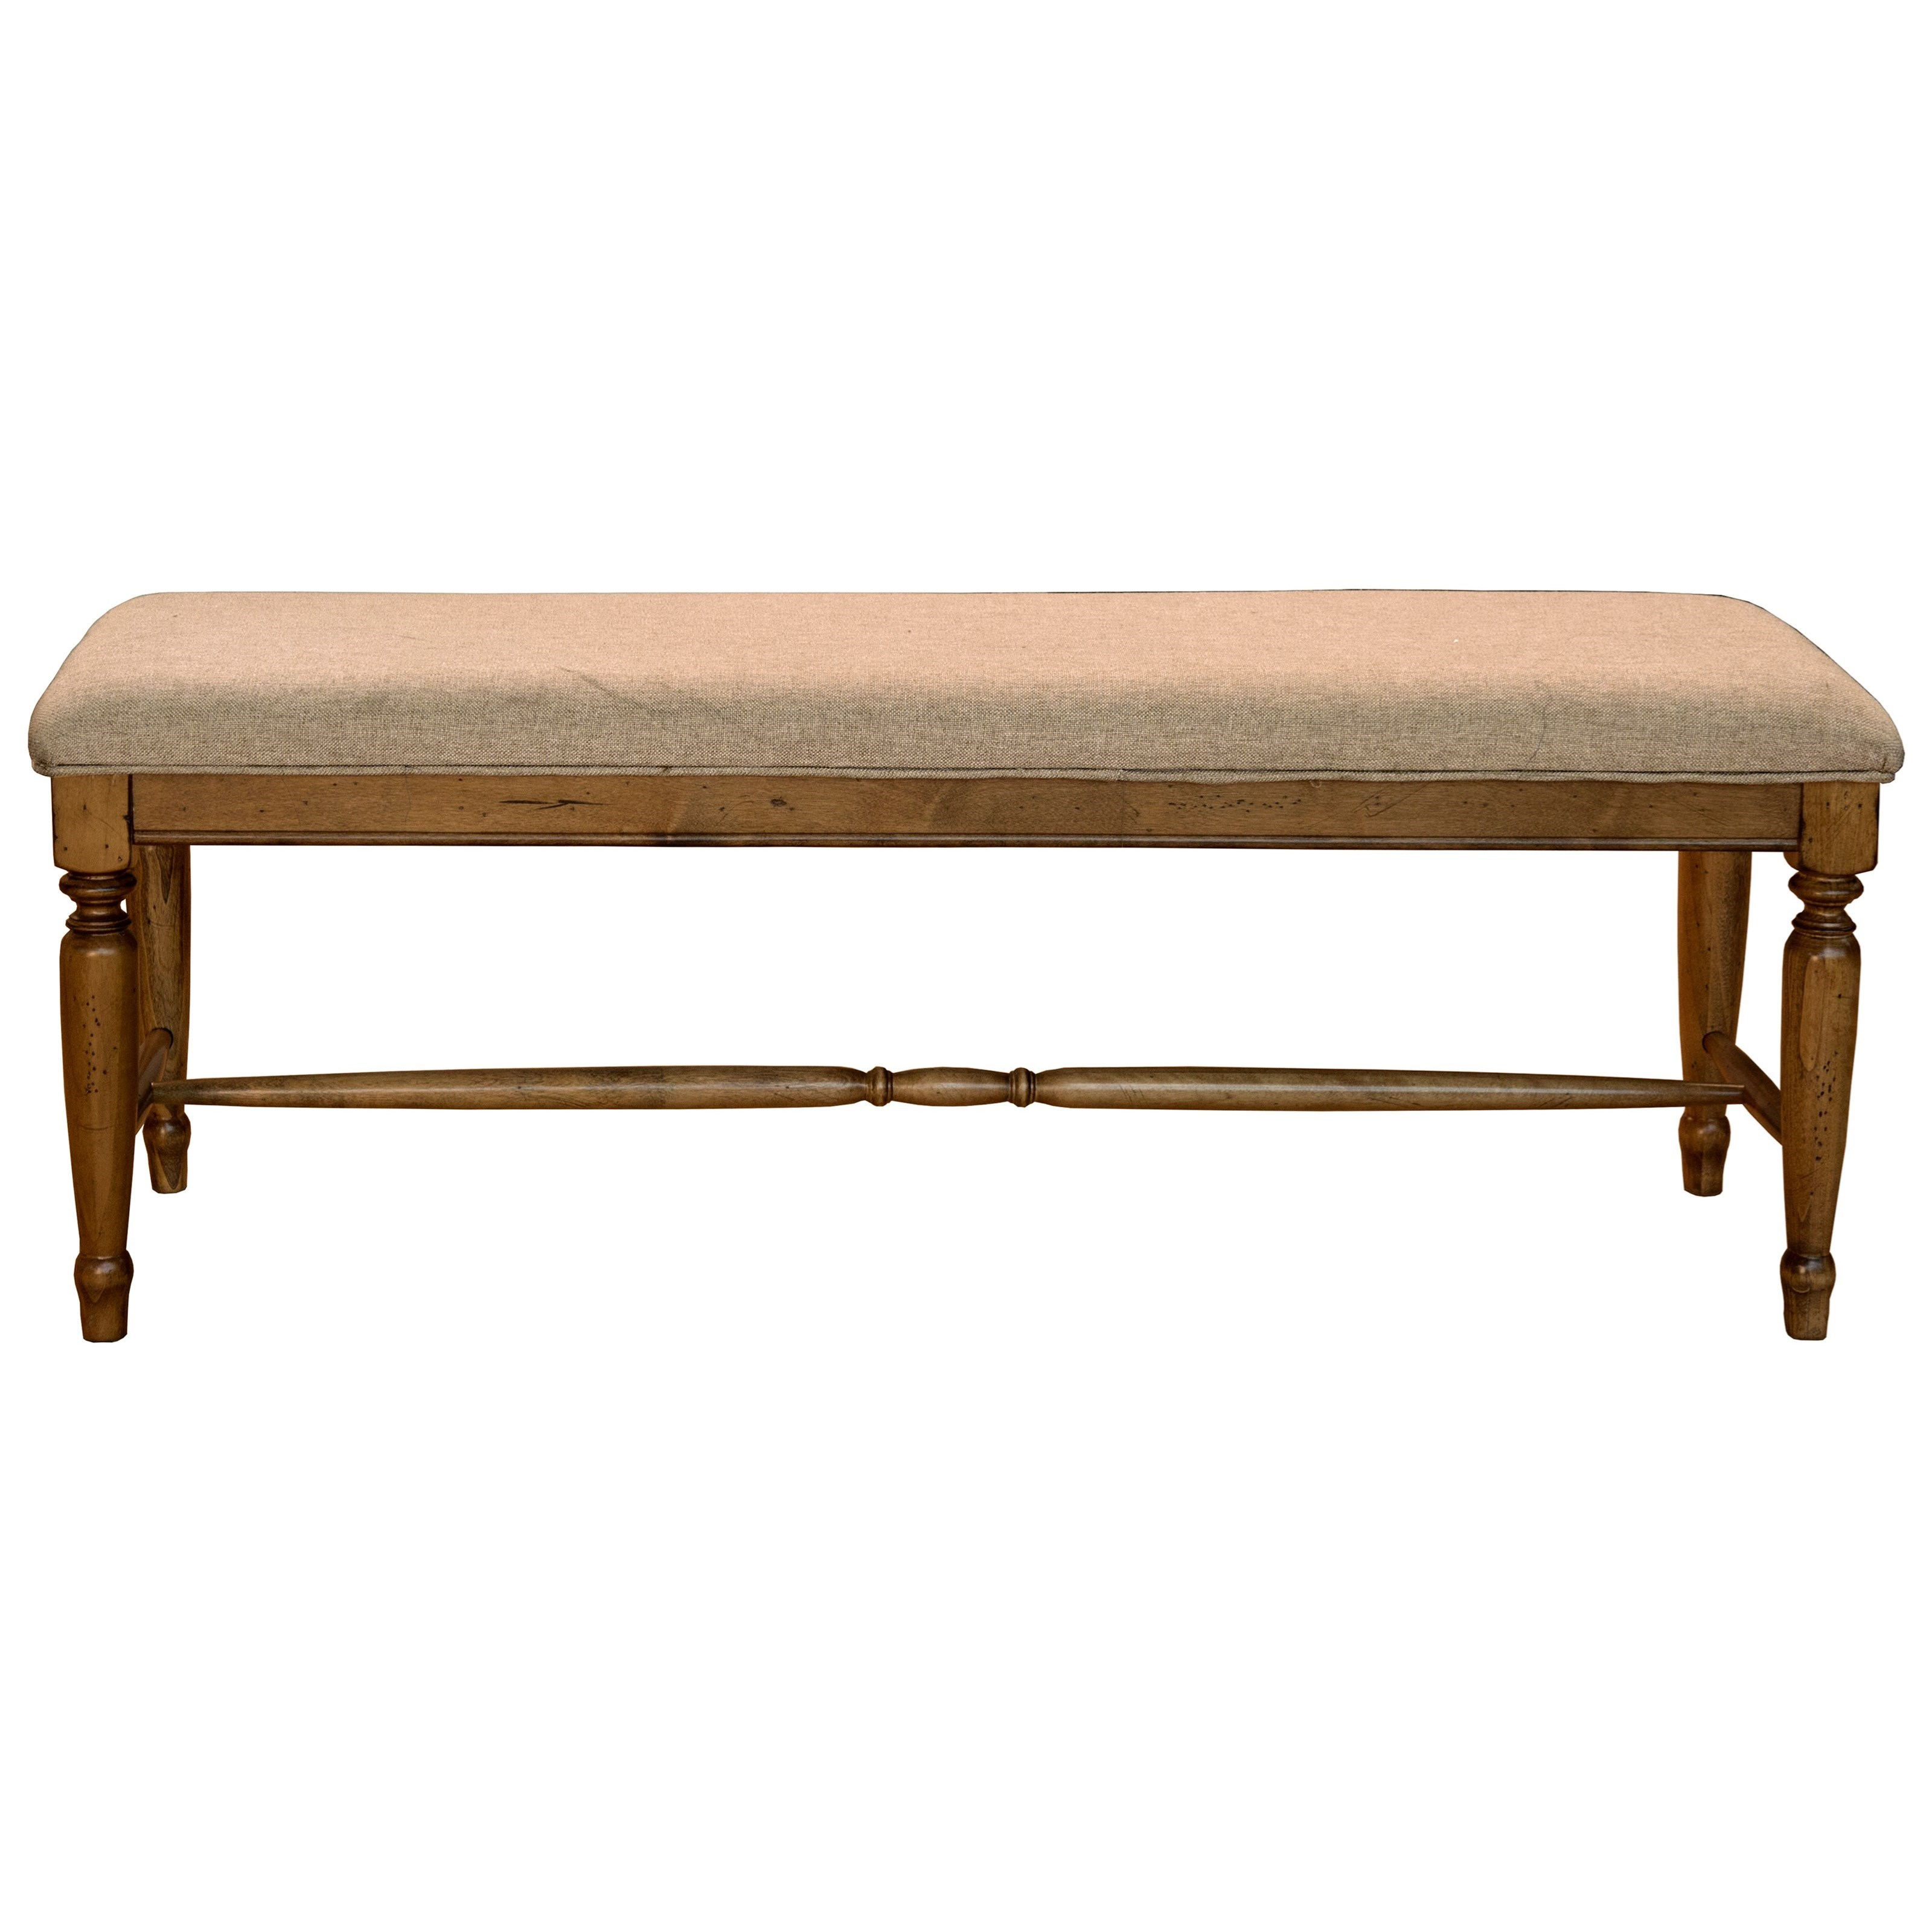 Bennett Upholstered Bench by A-A at Walker's Furniture